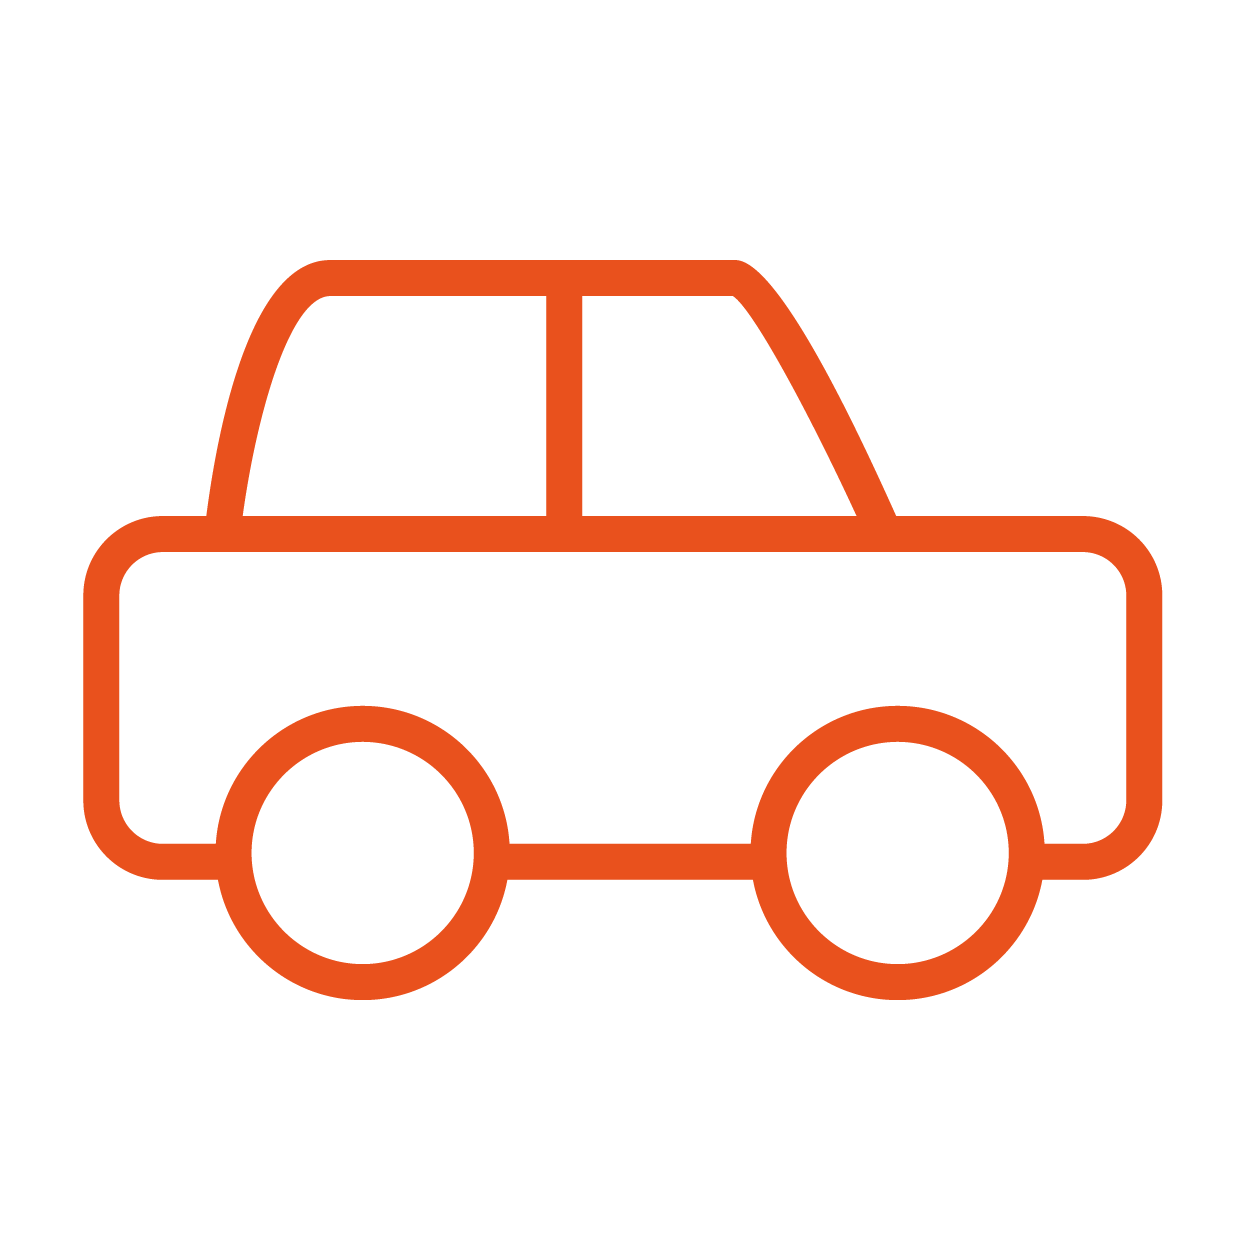 800 x 200 clipart automobile vector freeuse library What does a full car service include? | Marmalade vector freeuse library